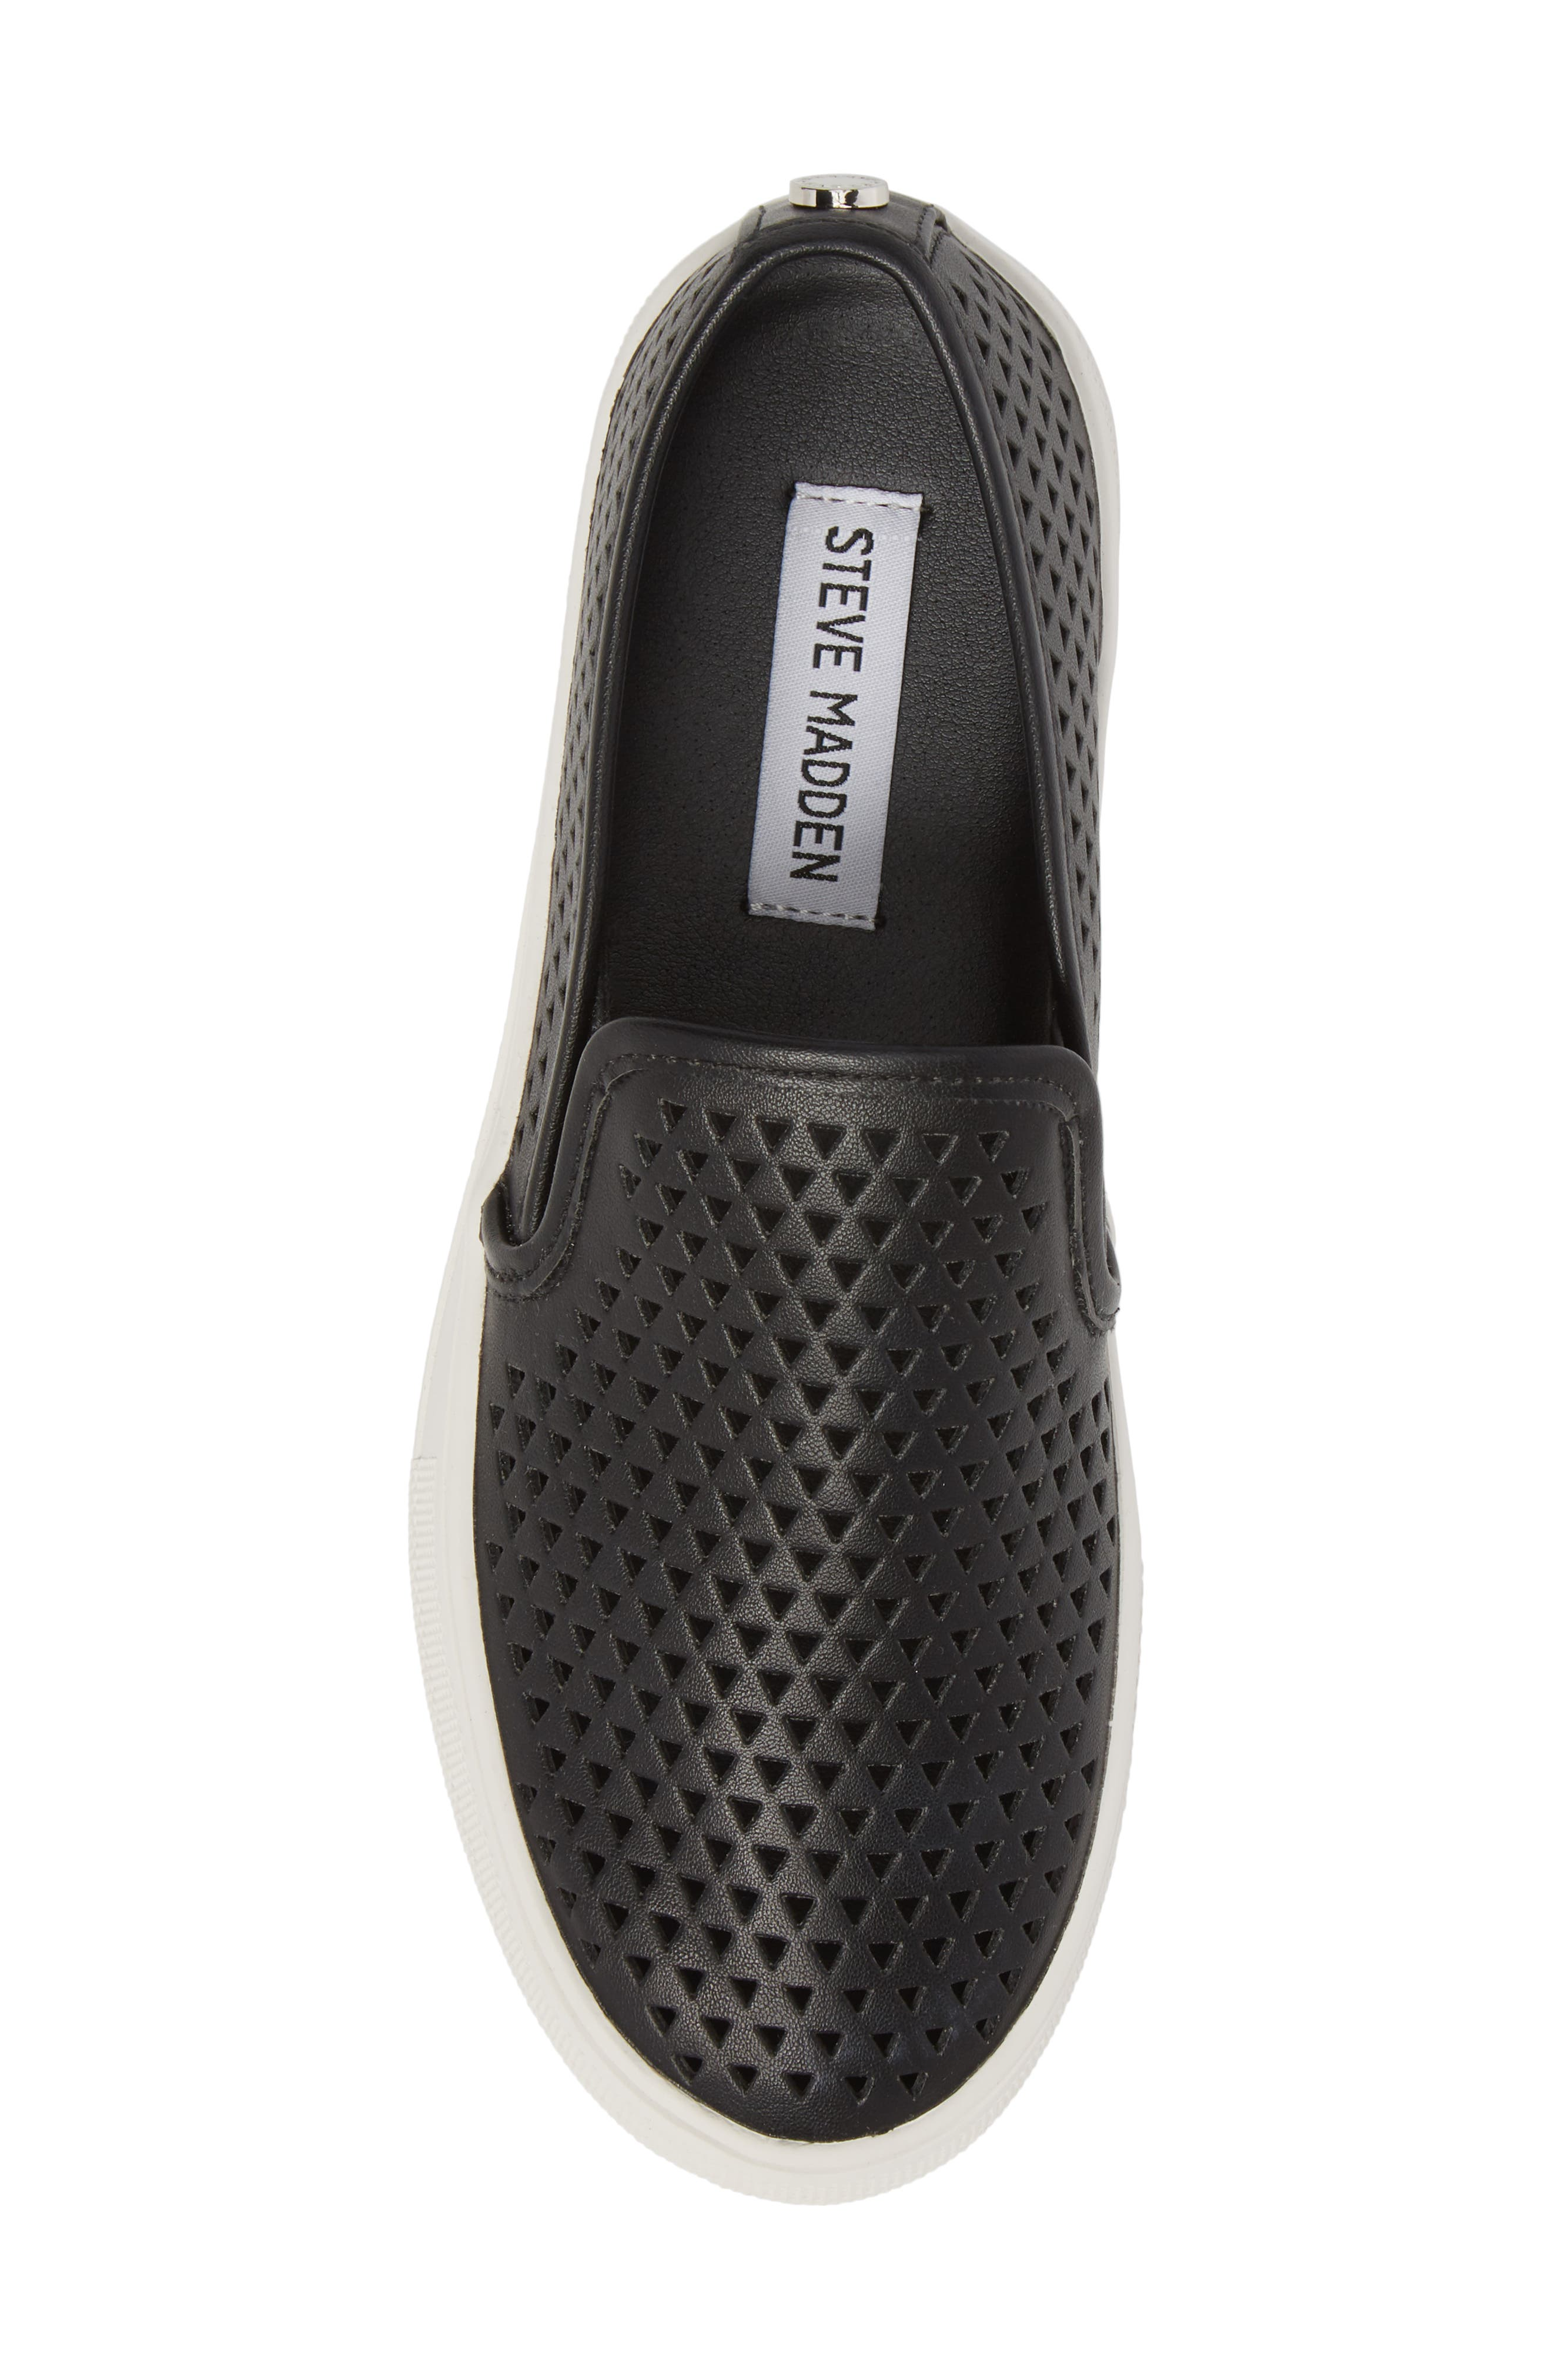 Gal-P Perforated Slip-On Sneaker,                             Alternate thumbnail 5, color,                             001